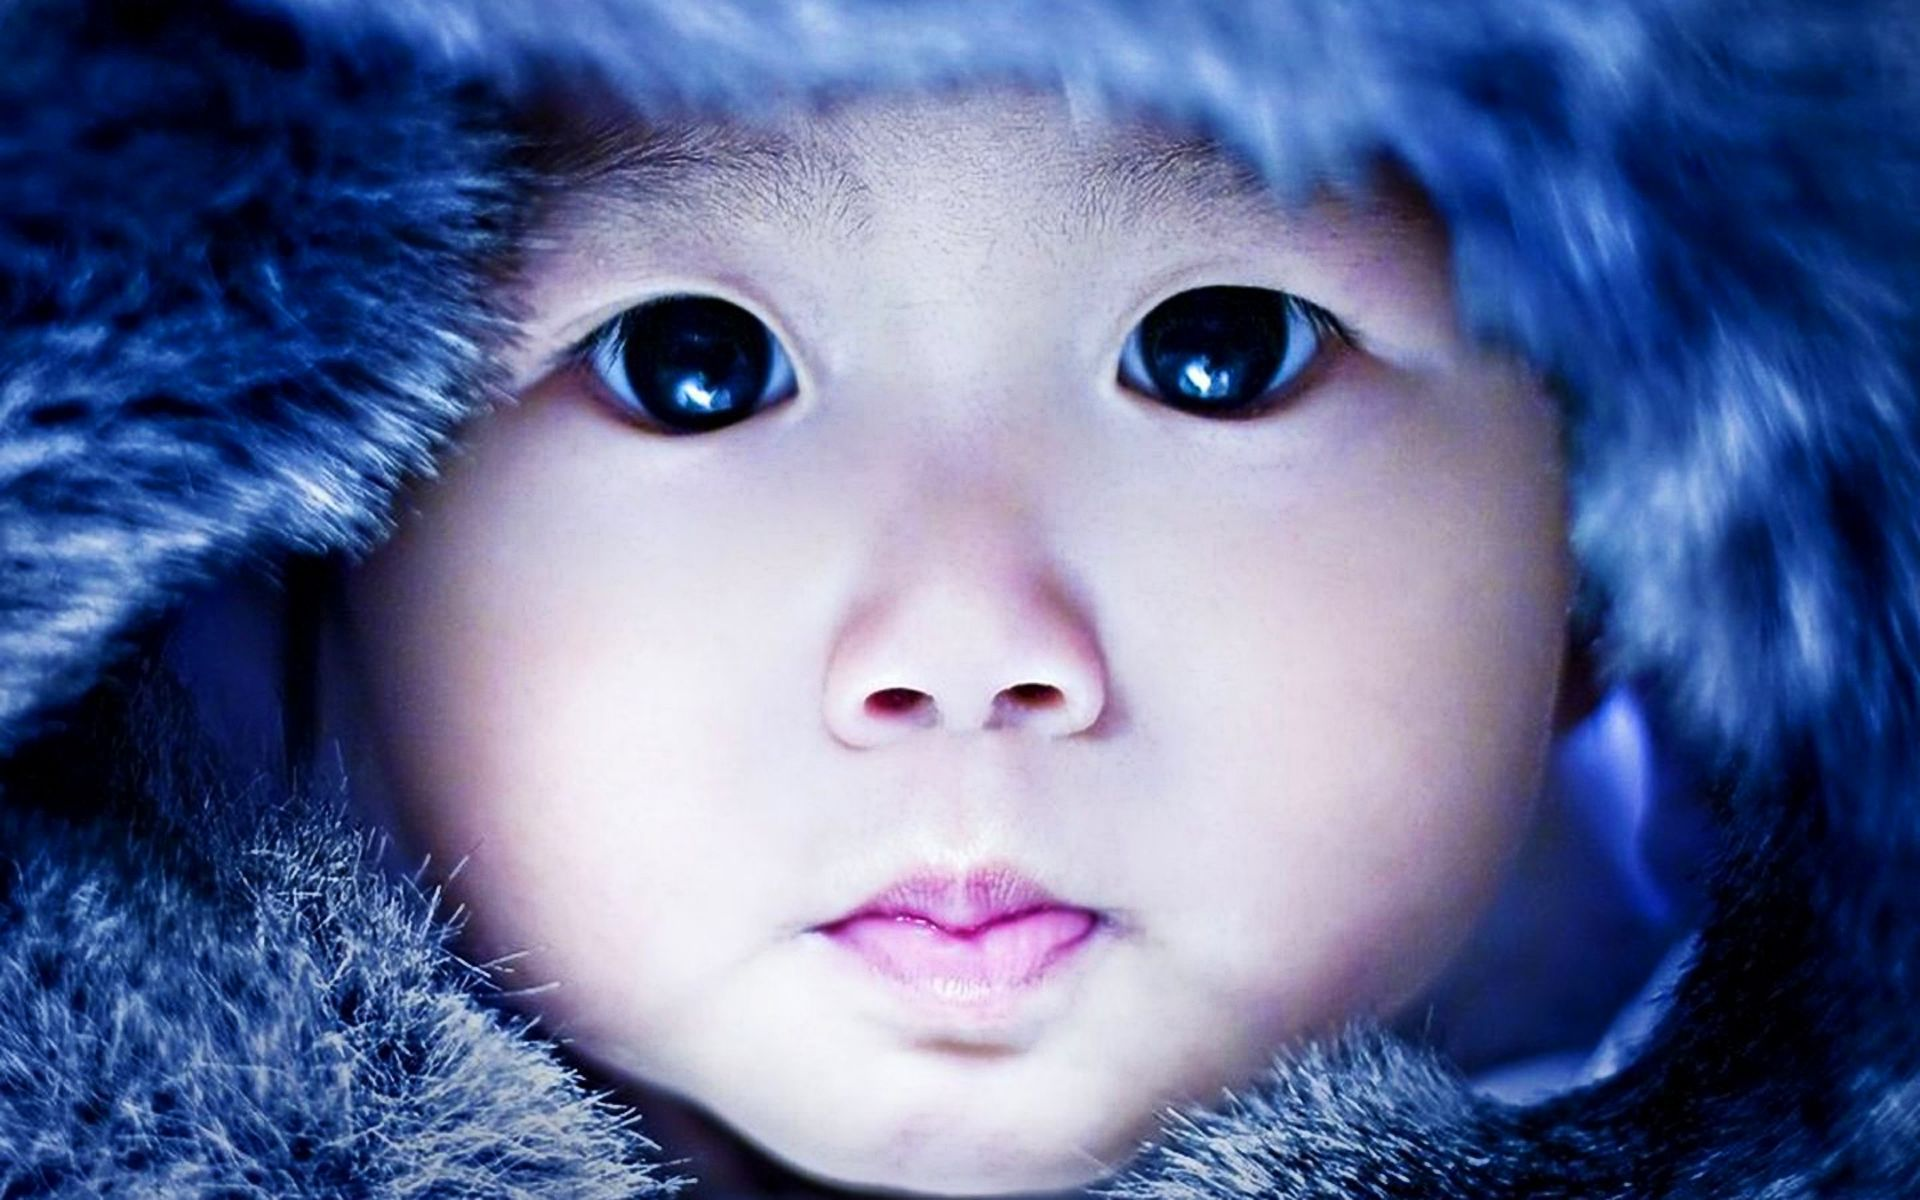 Download Baby Eyes Wallpaper Full Hd Wallpapers Cute Baby